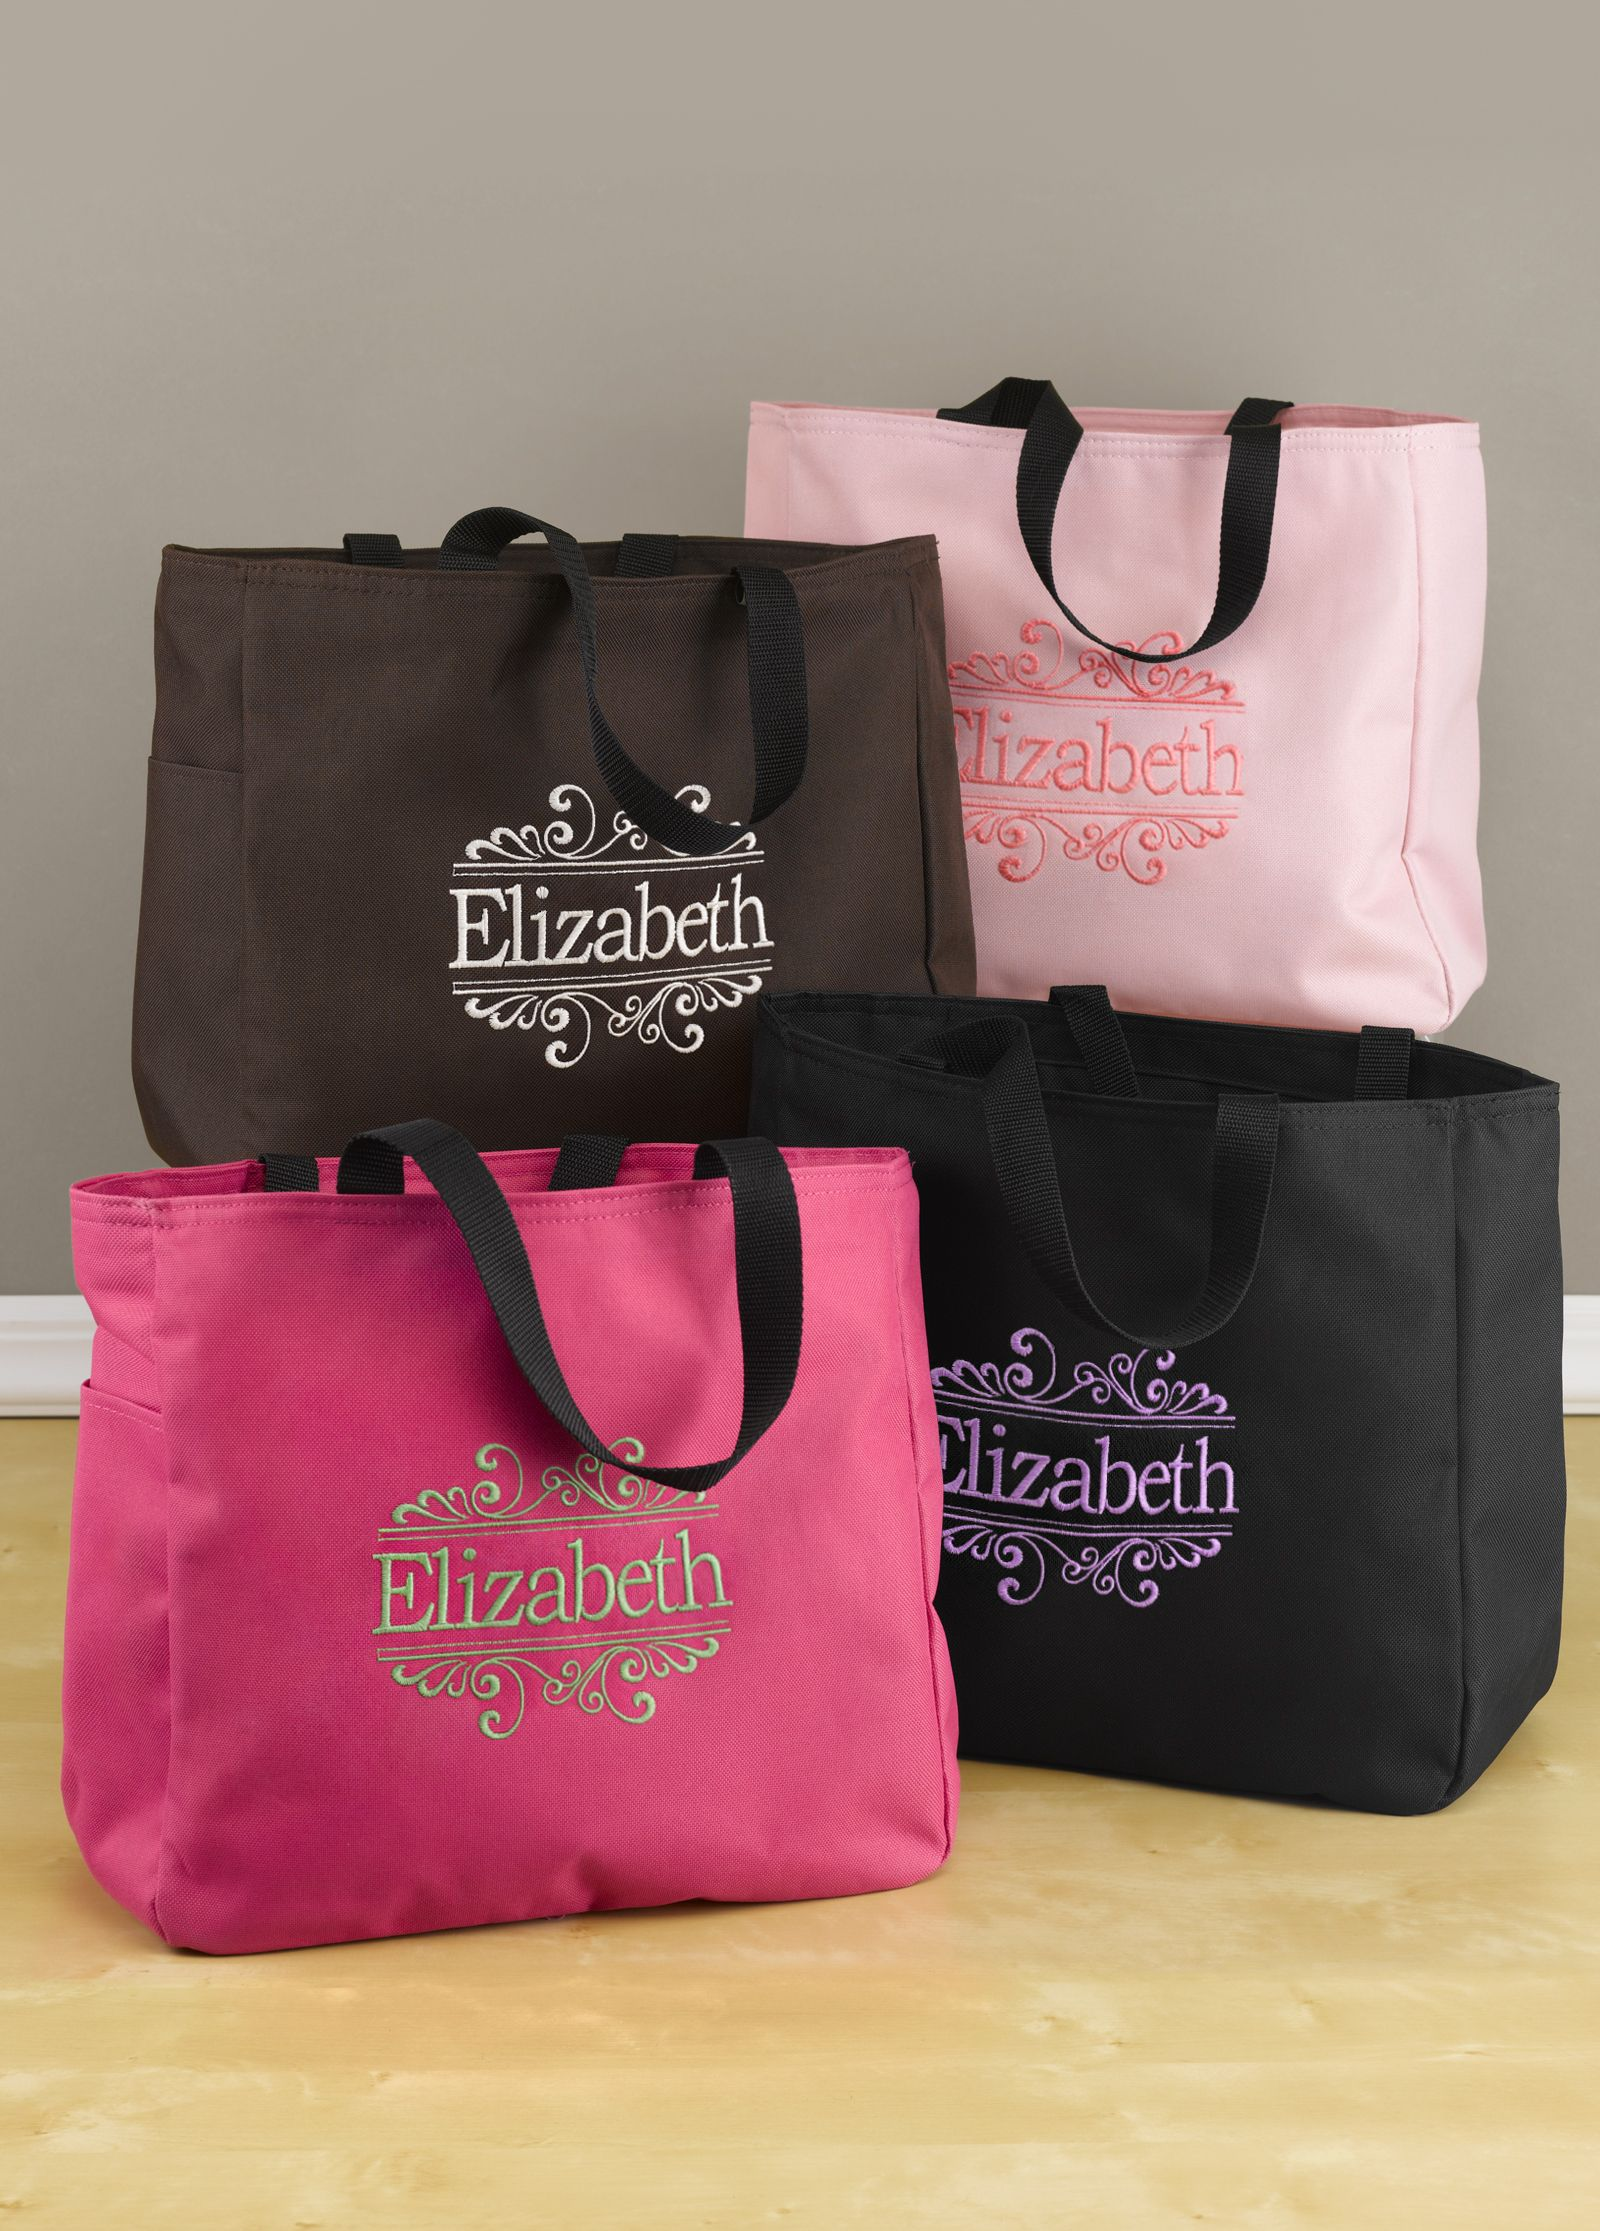 Gift Your Bridesmaids With A Tote Bag That Is Perfectly Sized For Carrying Wedding Day Essentials And Personalized Just Her